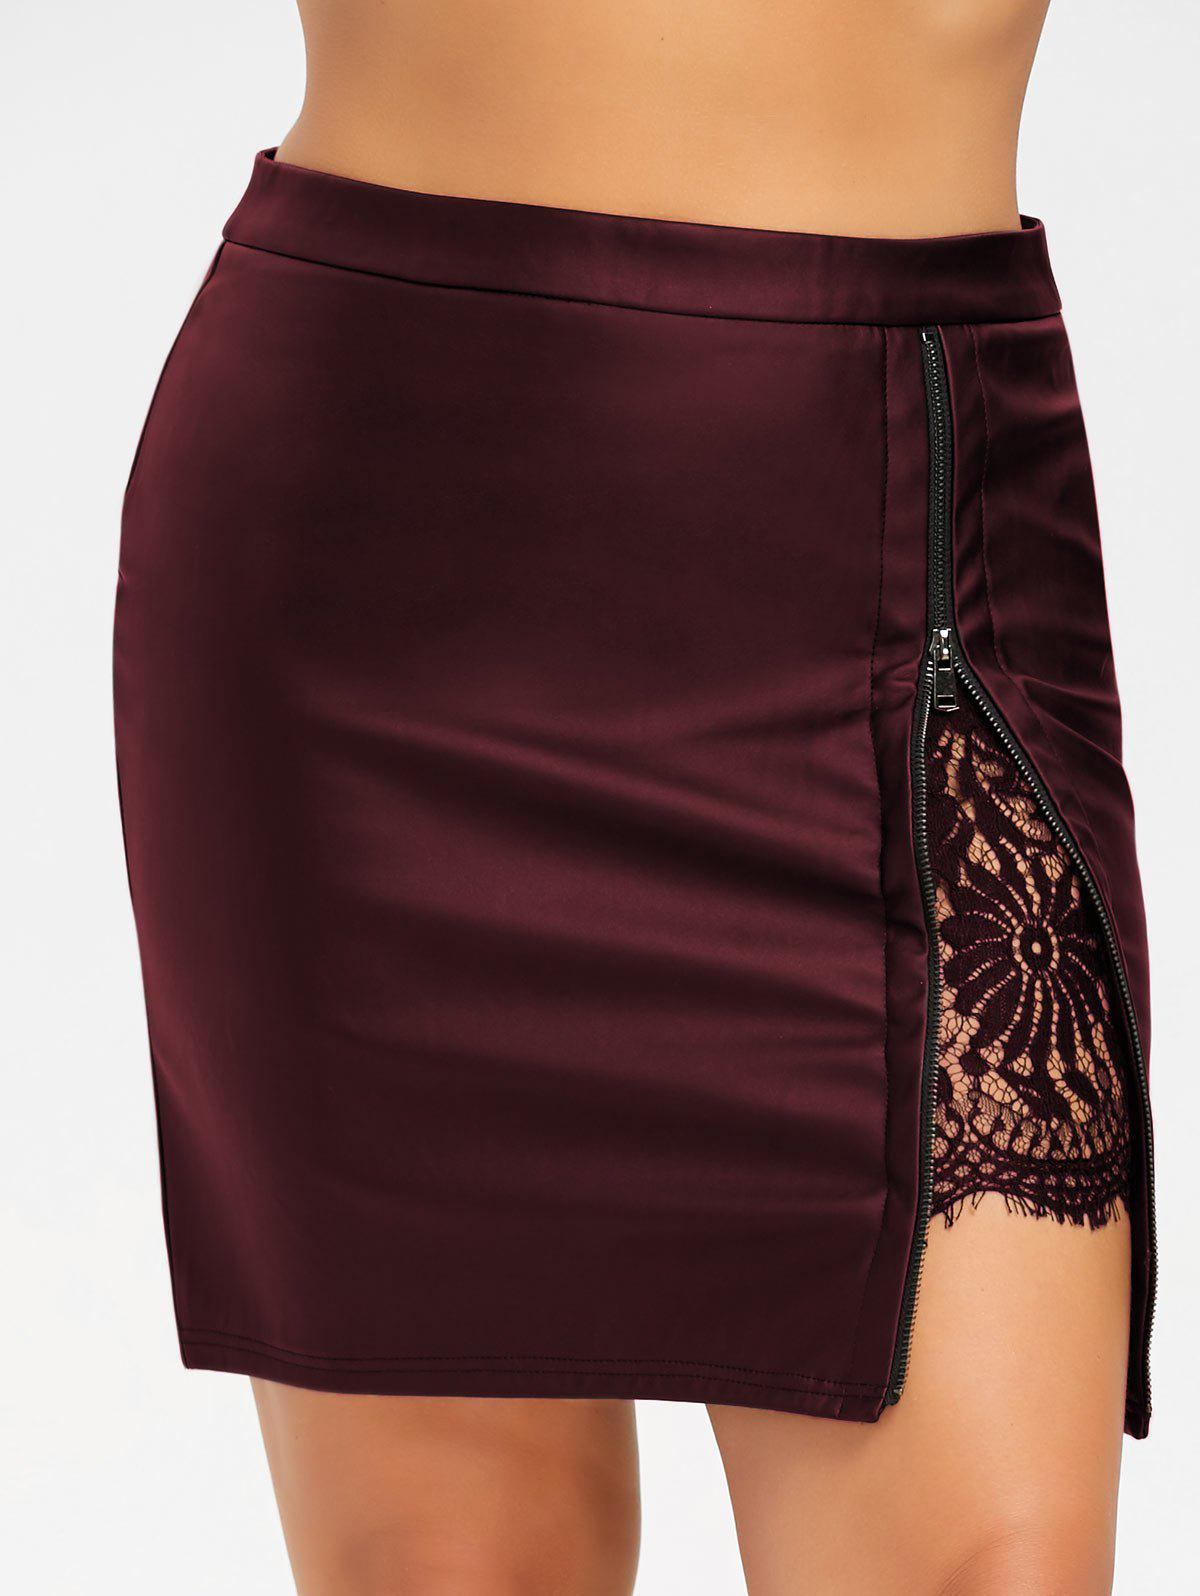 Plus Size Lace Insert PU Leather Skirt lace insert fitted faux leather skirt